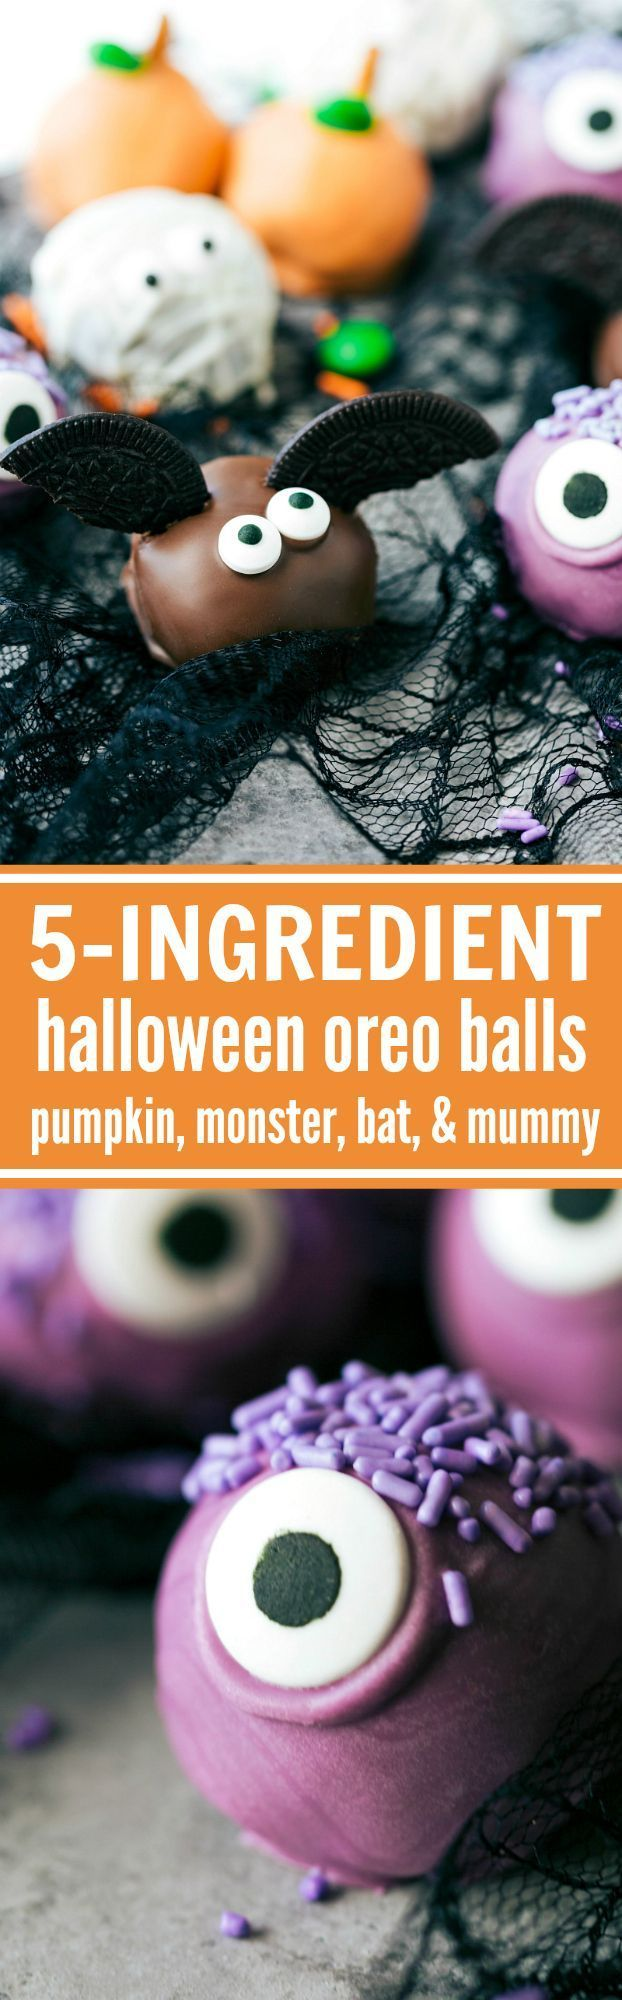 4 adorable and festive Halloween Oreo Balls monsters, pumpkins, bats, and mummies; each made with 5 ingredients or less! via http://chelseasmessyapron.com